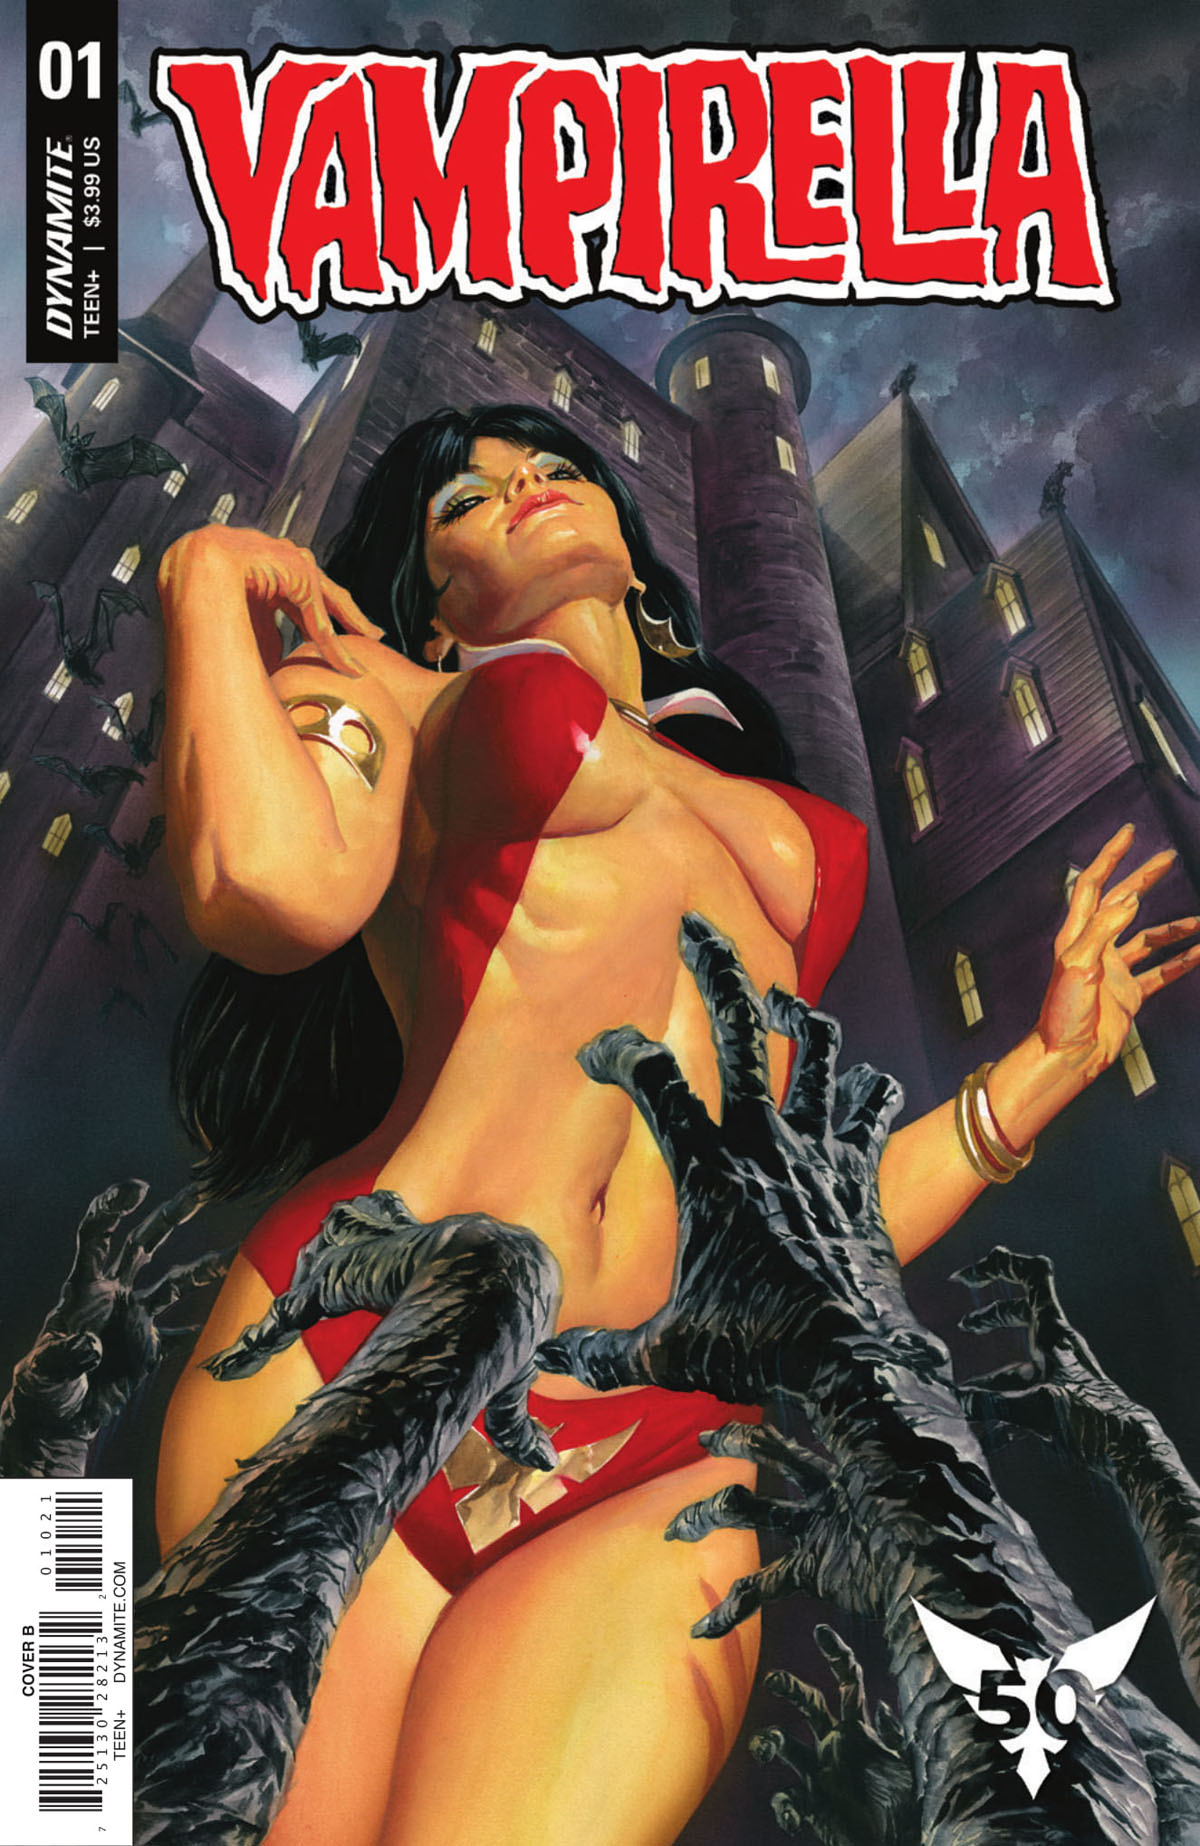 Vampirella #1 cover by Alex Ross